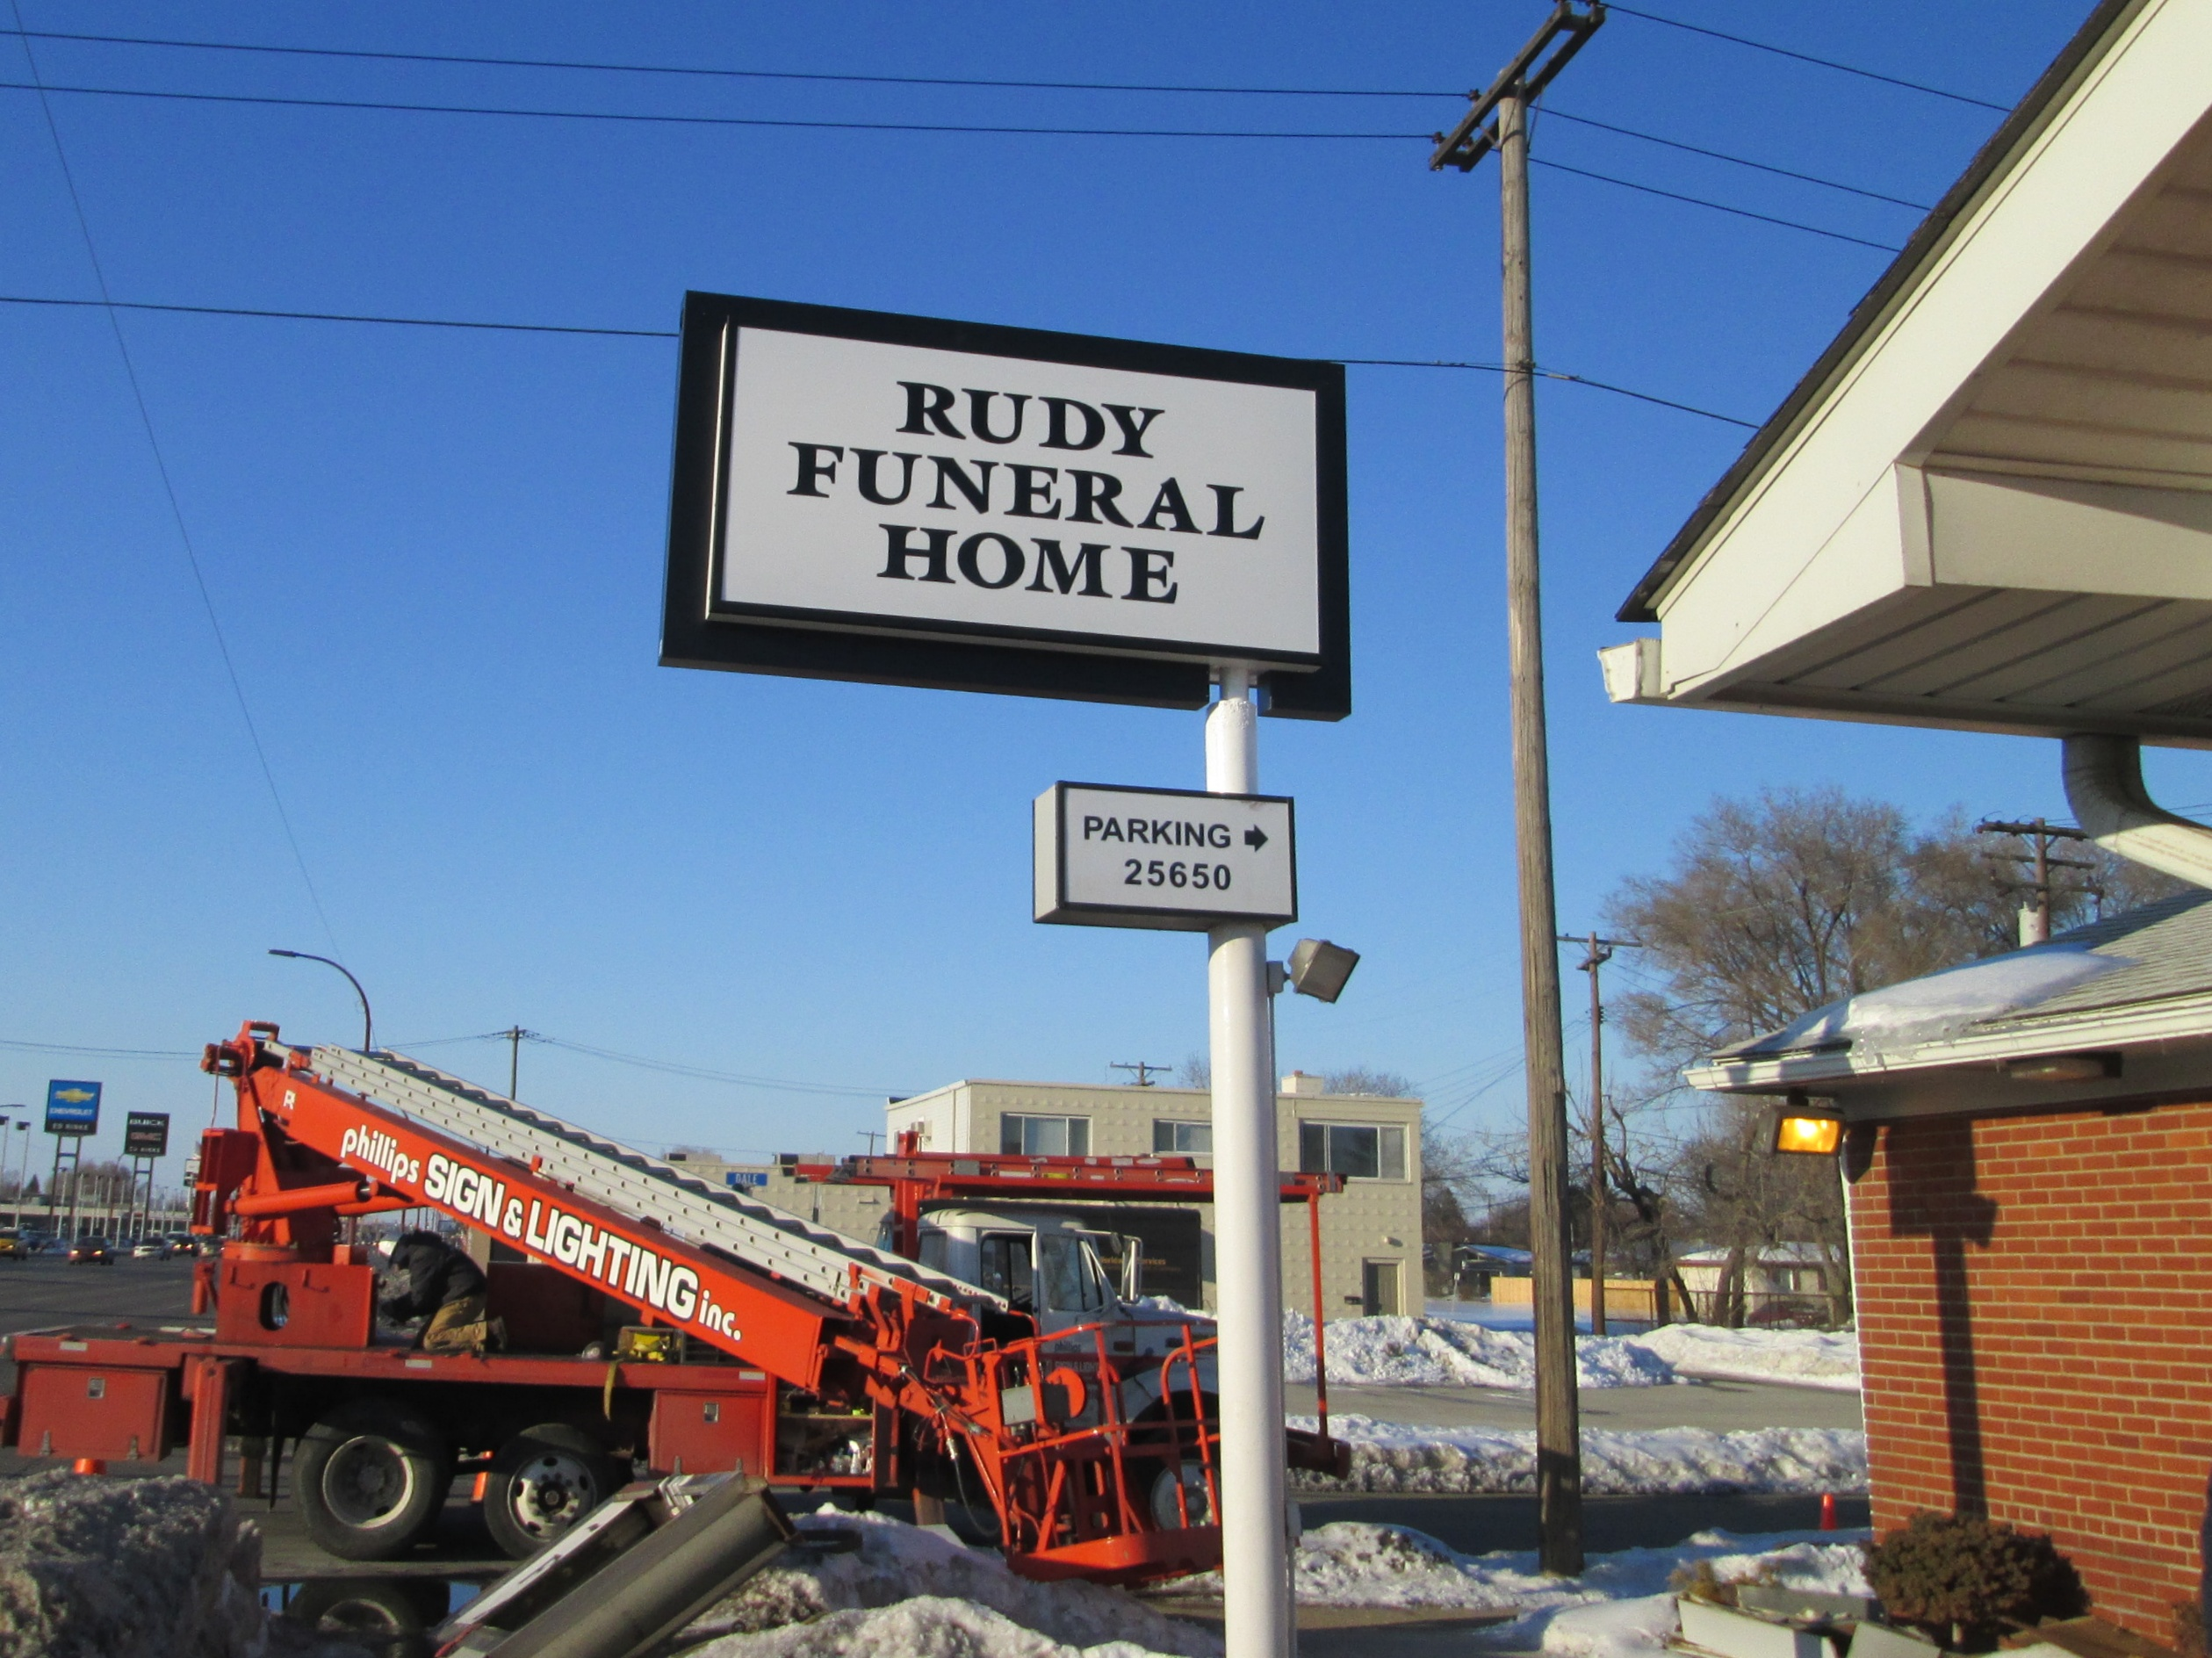 Rudy Funeral Home Pole Sign